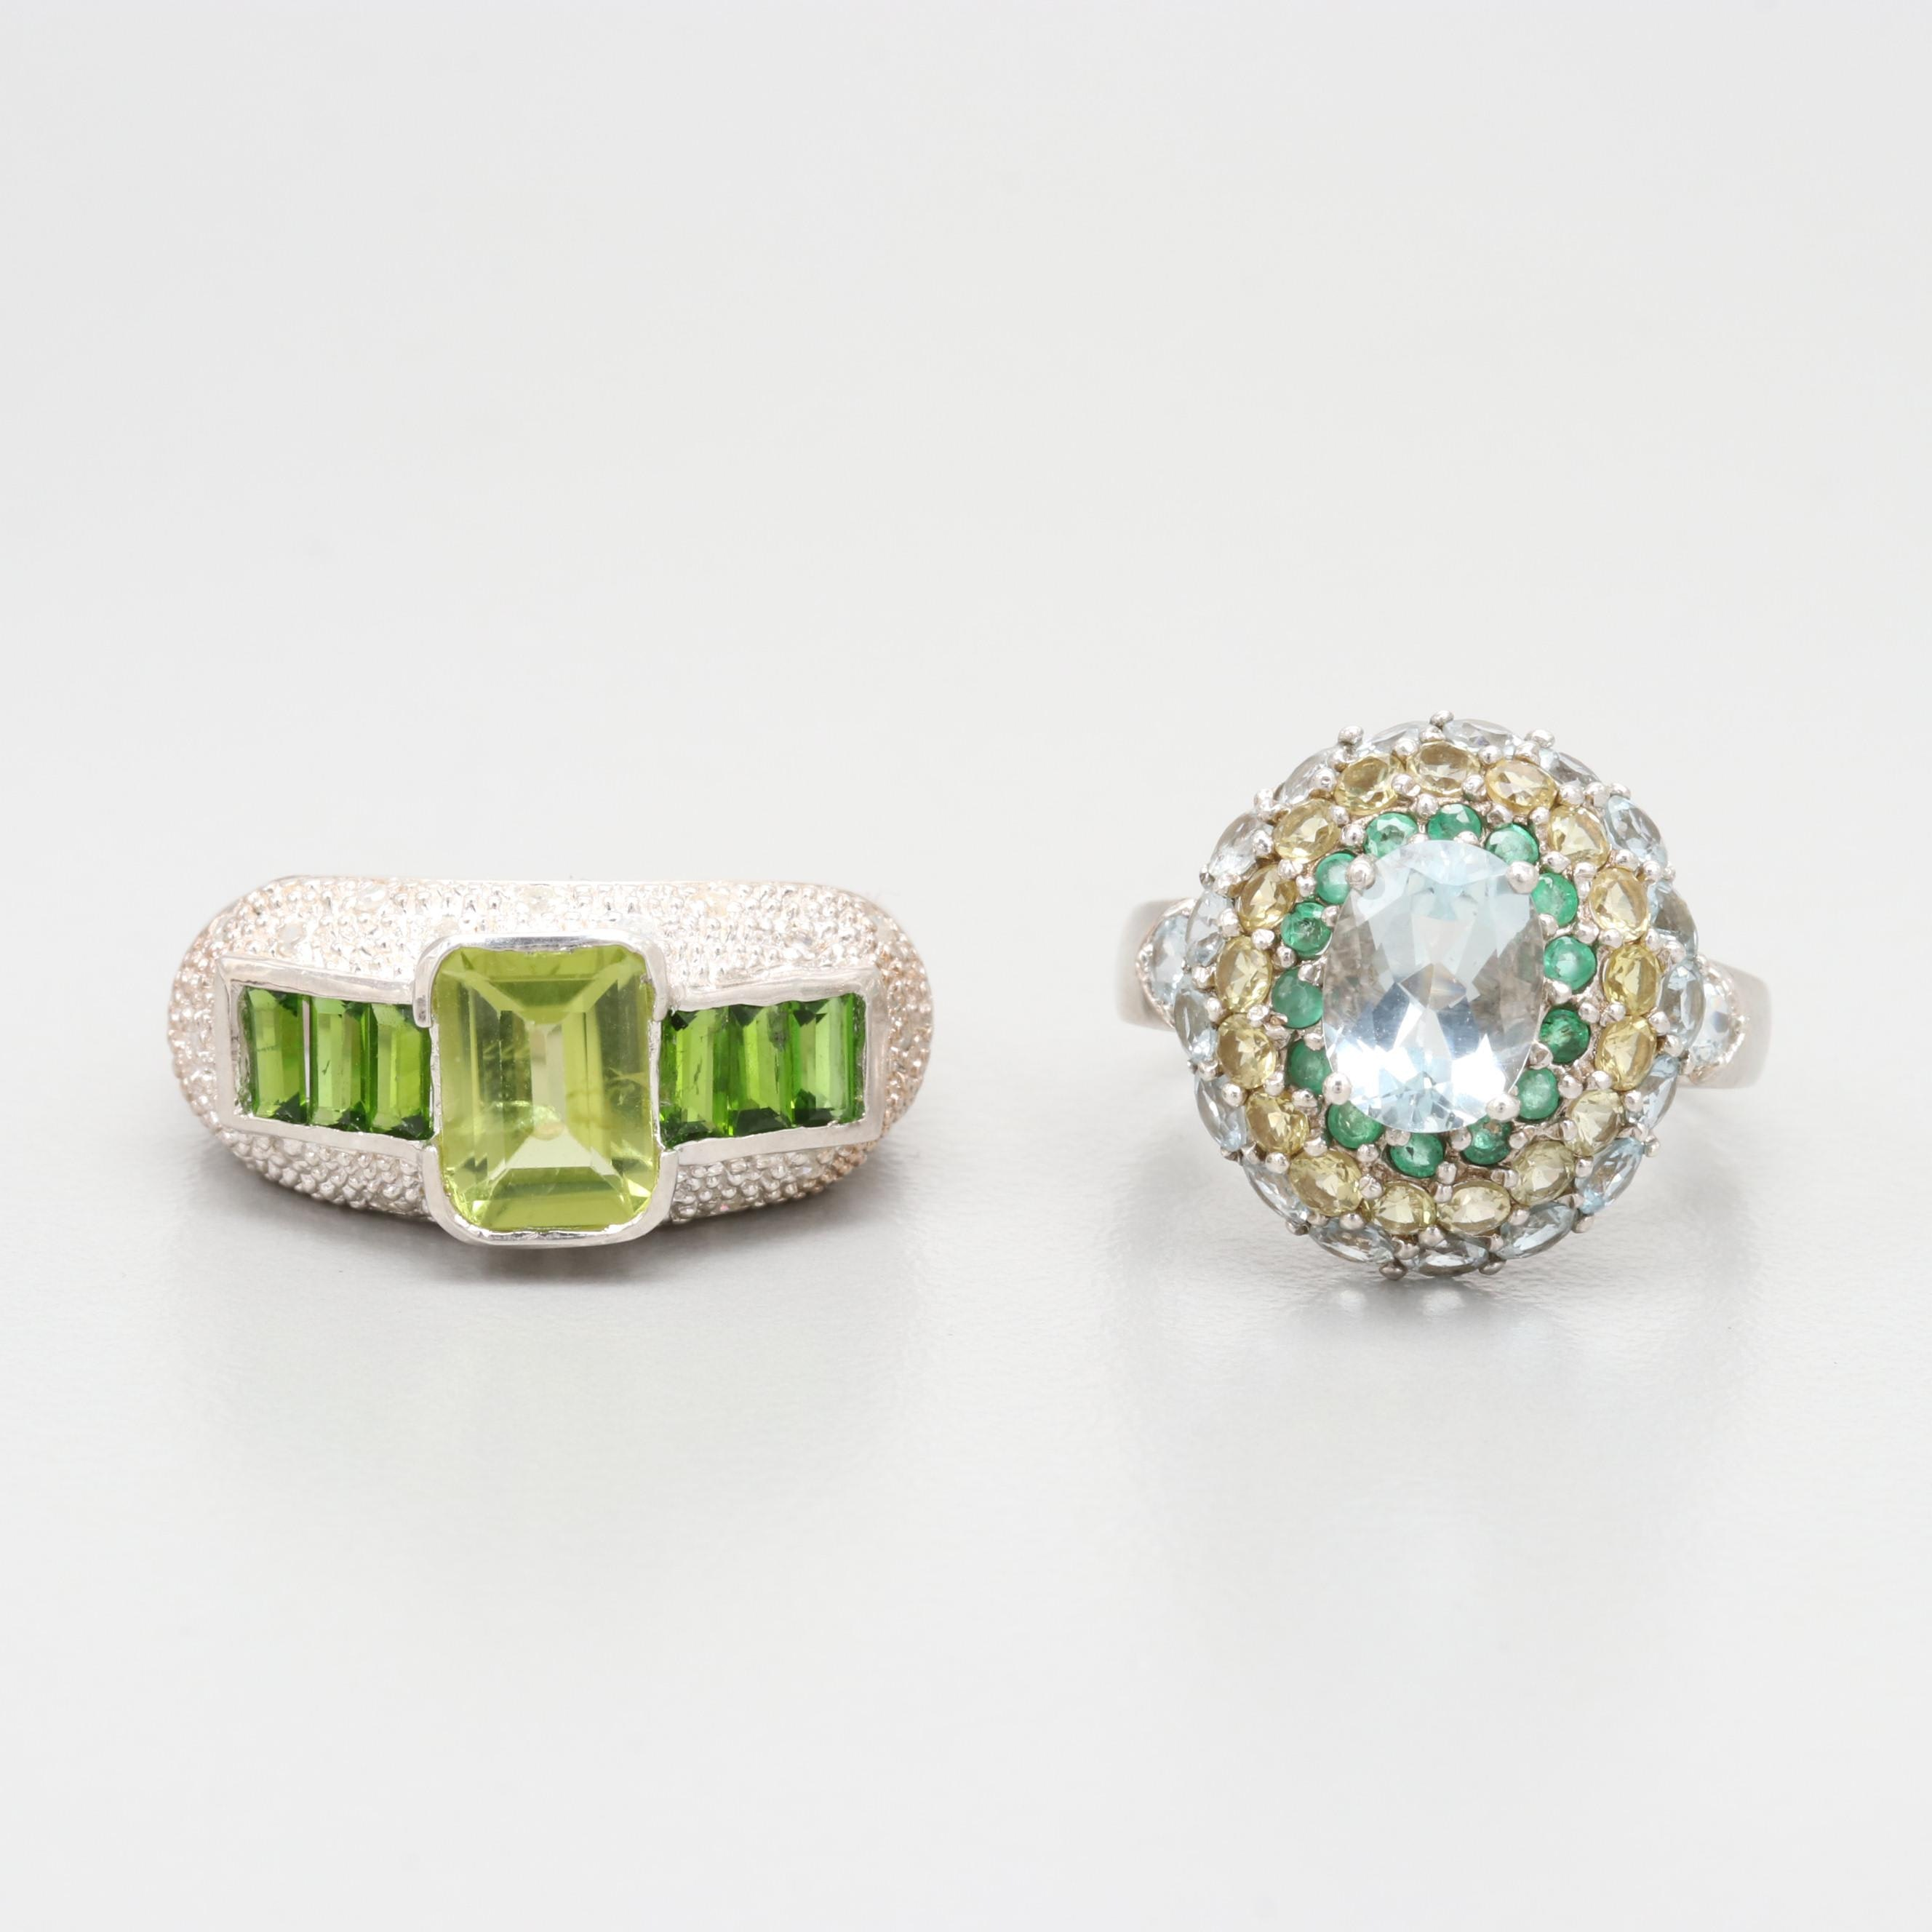 Sterling Silver Ring Selection Including Chrome Diopside, Emerald and Aquamarine